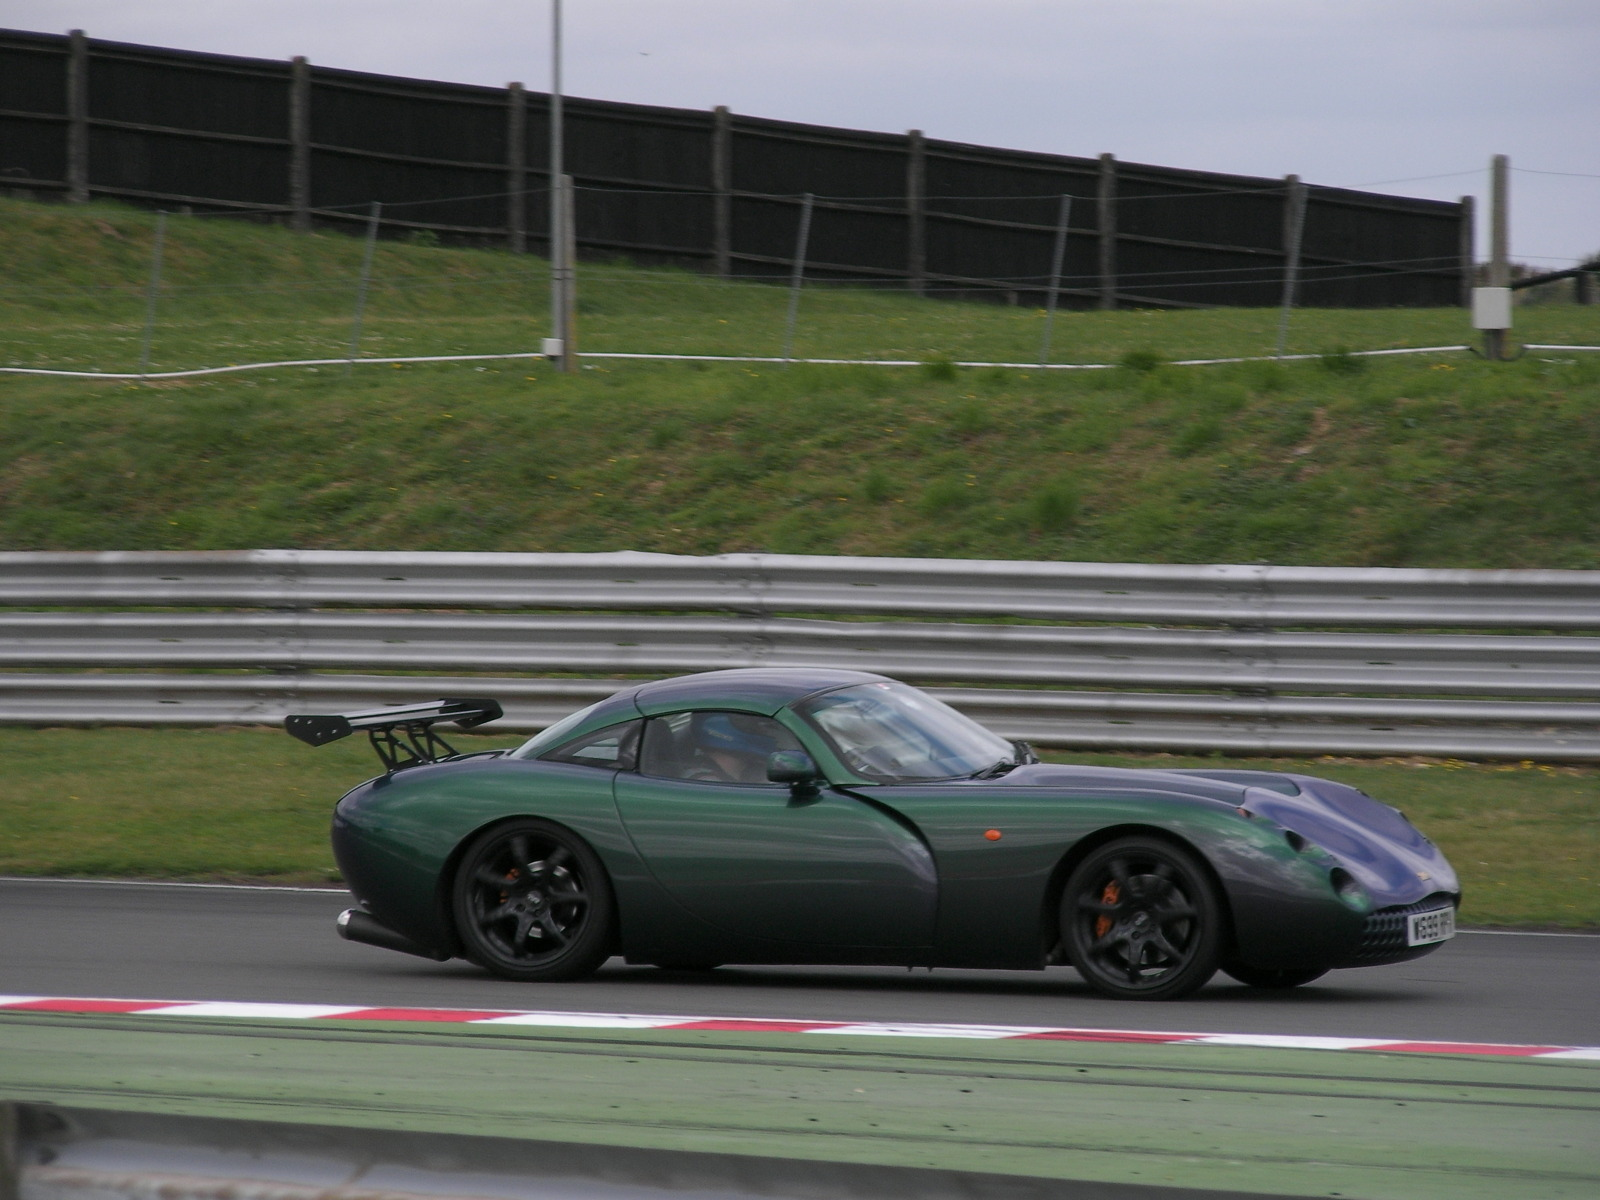 tvr_racing_green_tvr_unofficial_blog_1-1-1 Amazing Tvr Griffith Left Hand Drive Cars Trend